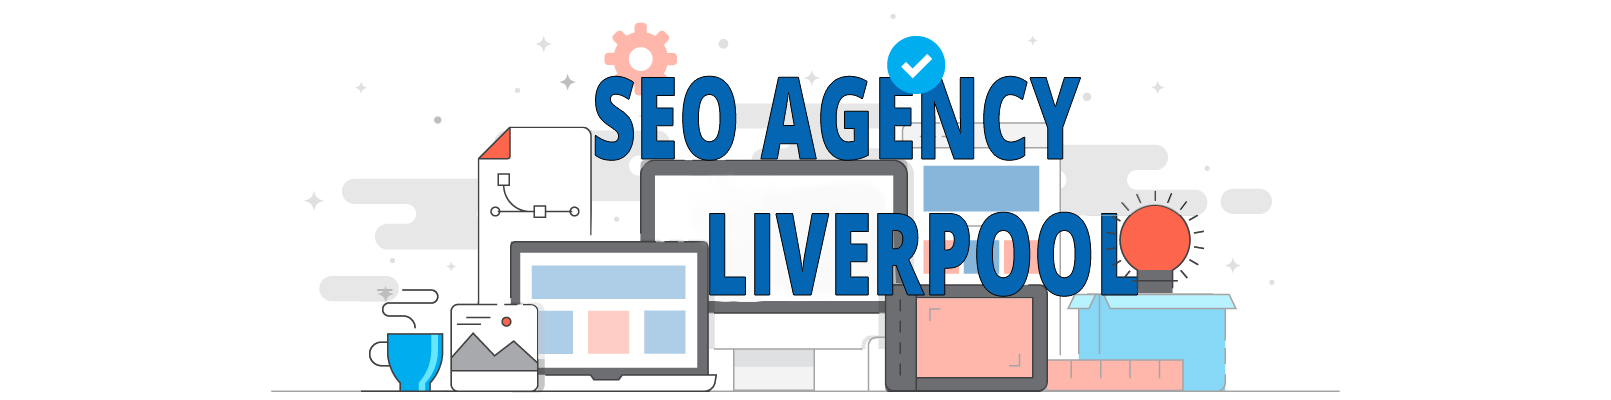 seek social seo agency liverpool header with transparent background